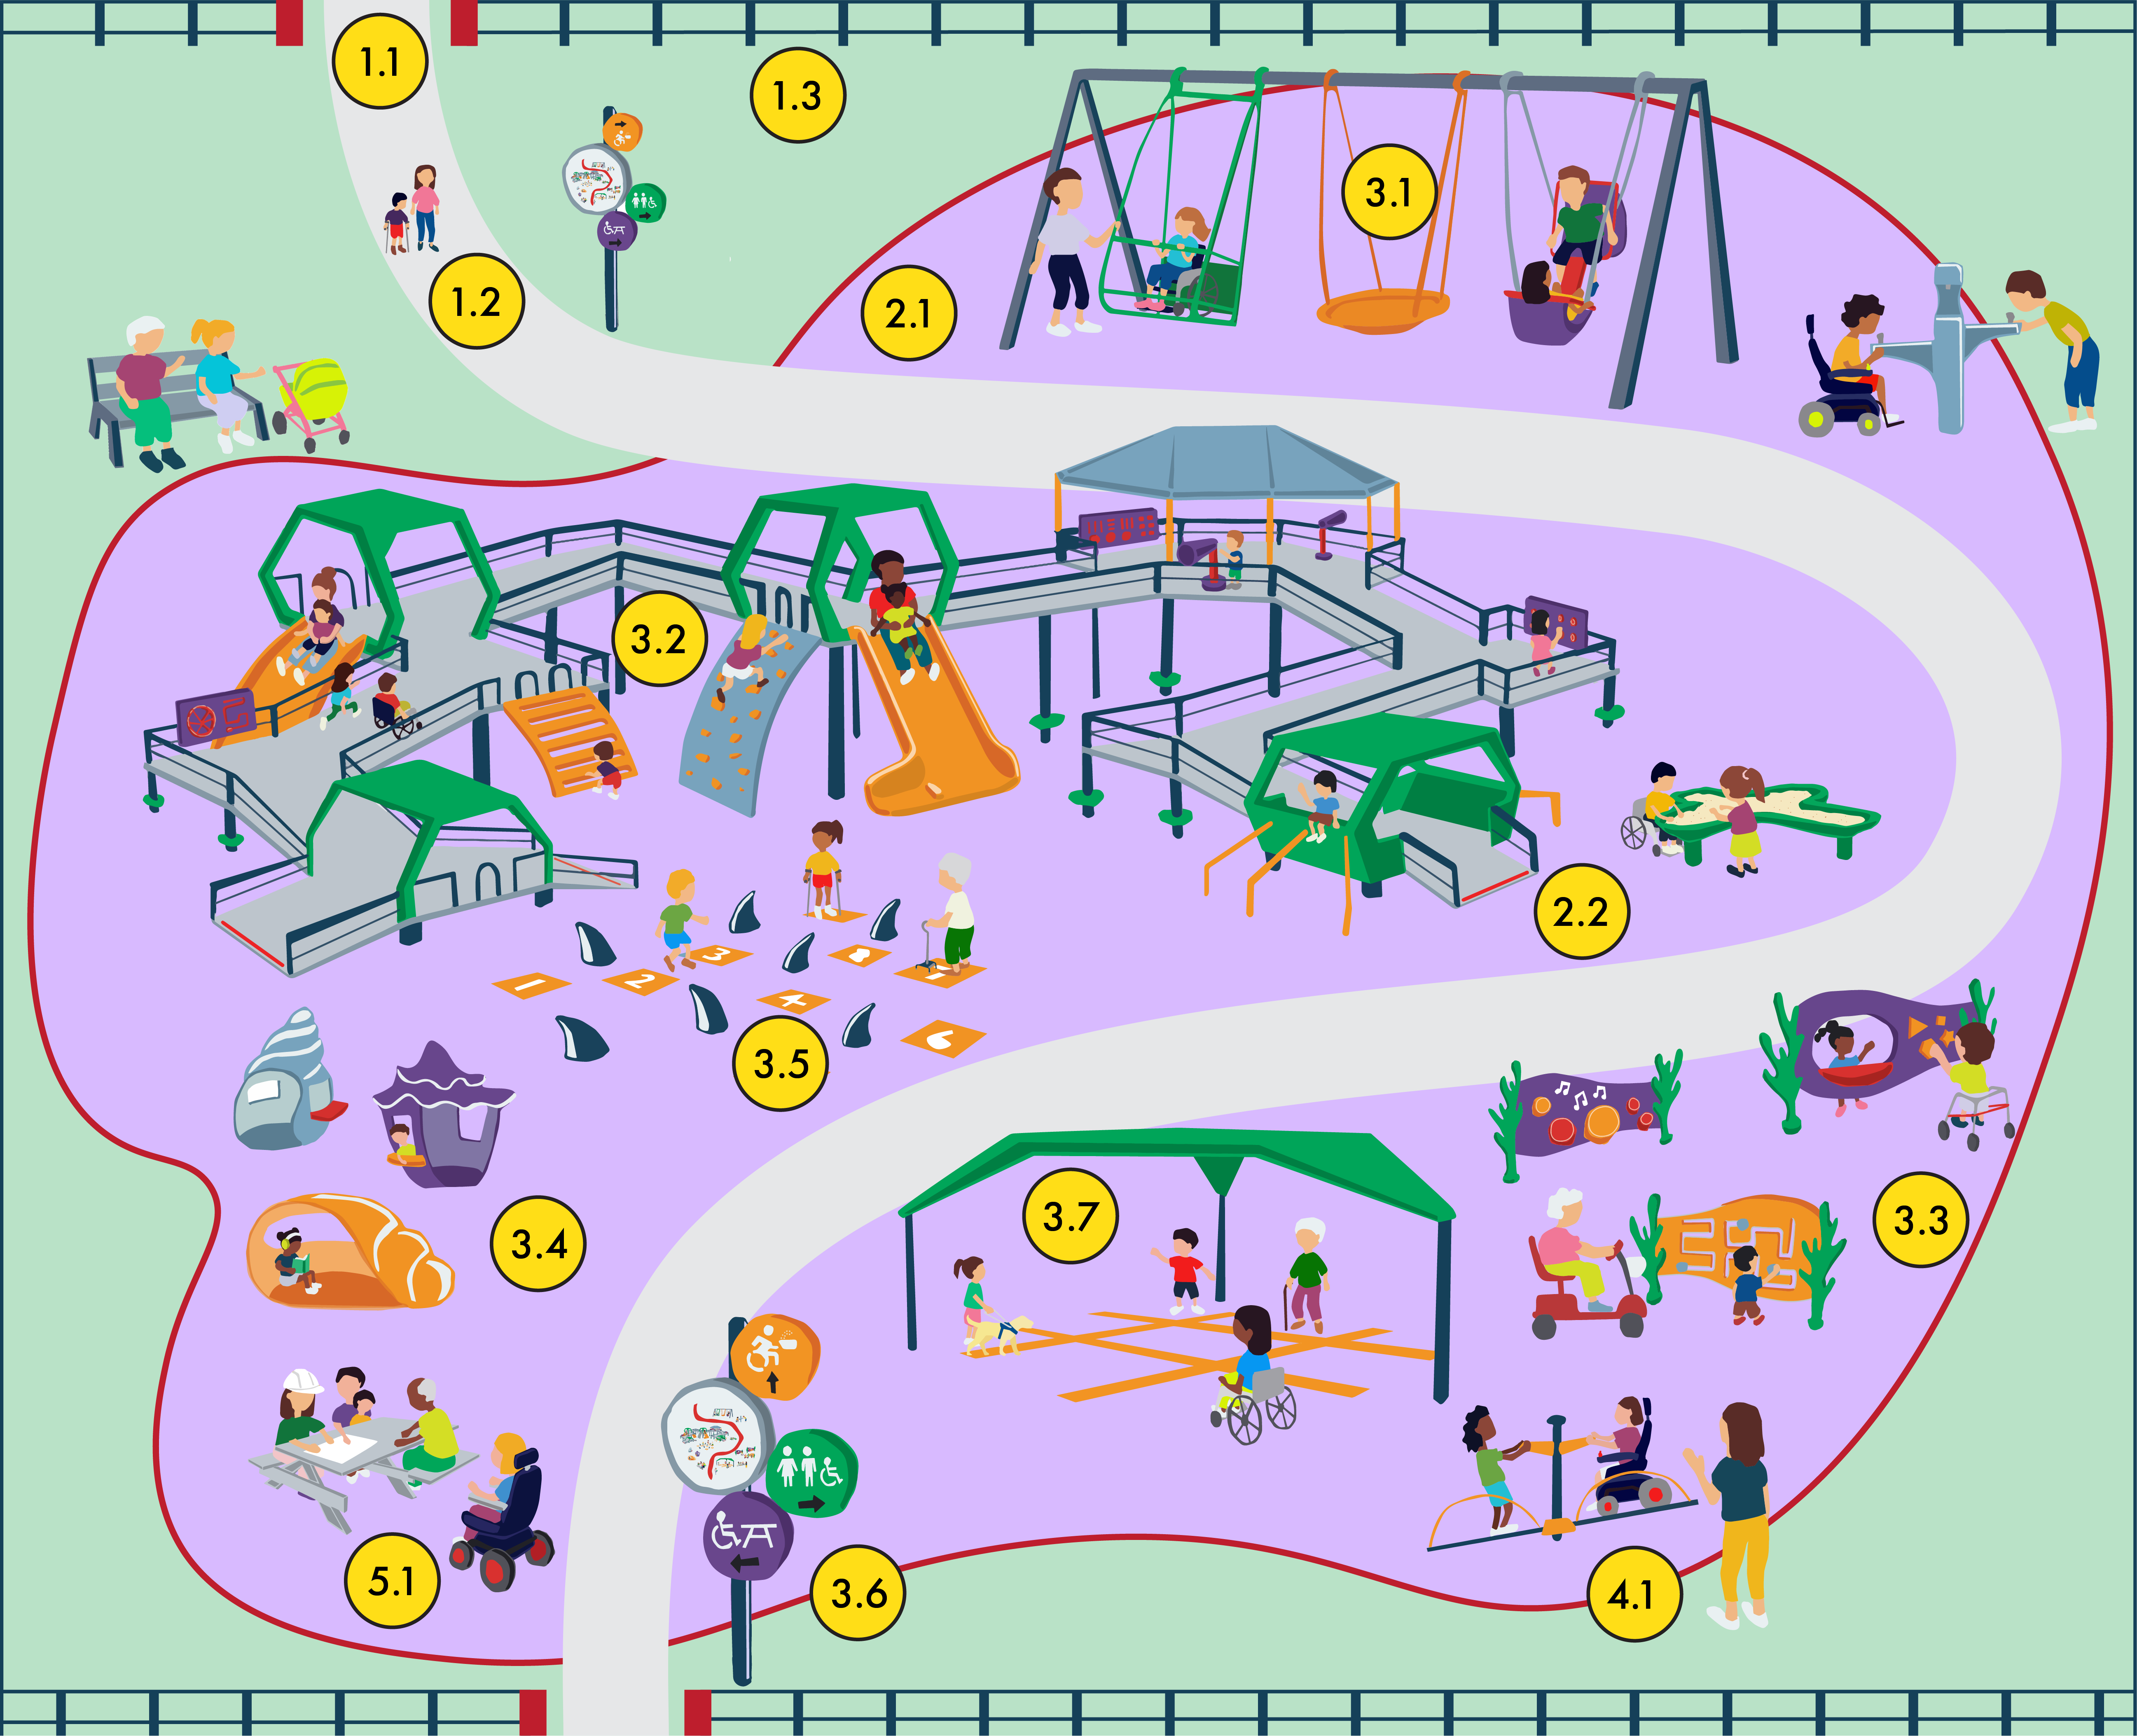 Diagram of an inclusive playground shows children of all ages and abilities playing in a playground, illustrating the evidence-informed recommendations for designing inclusive playgrounds.